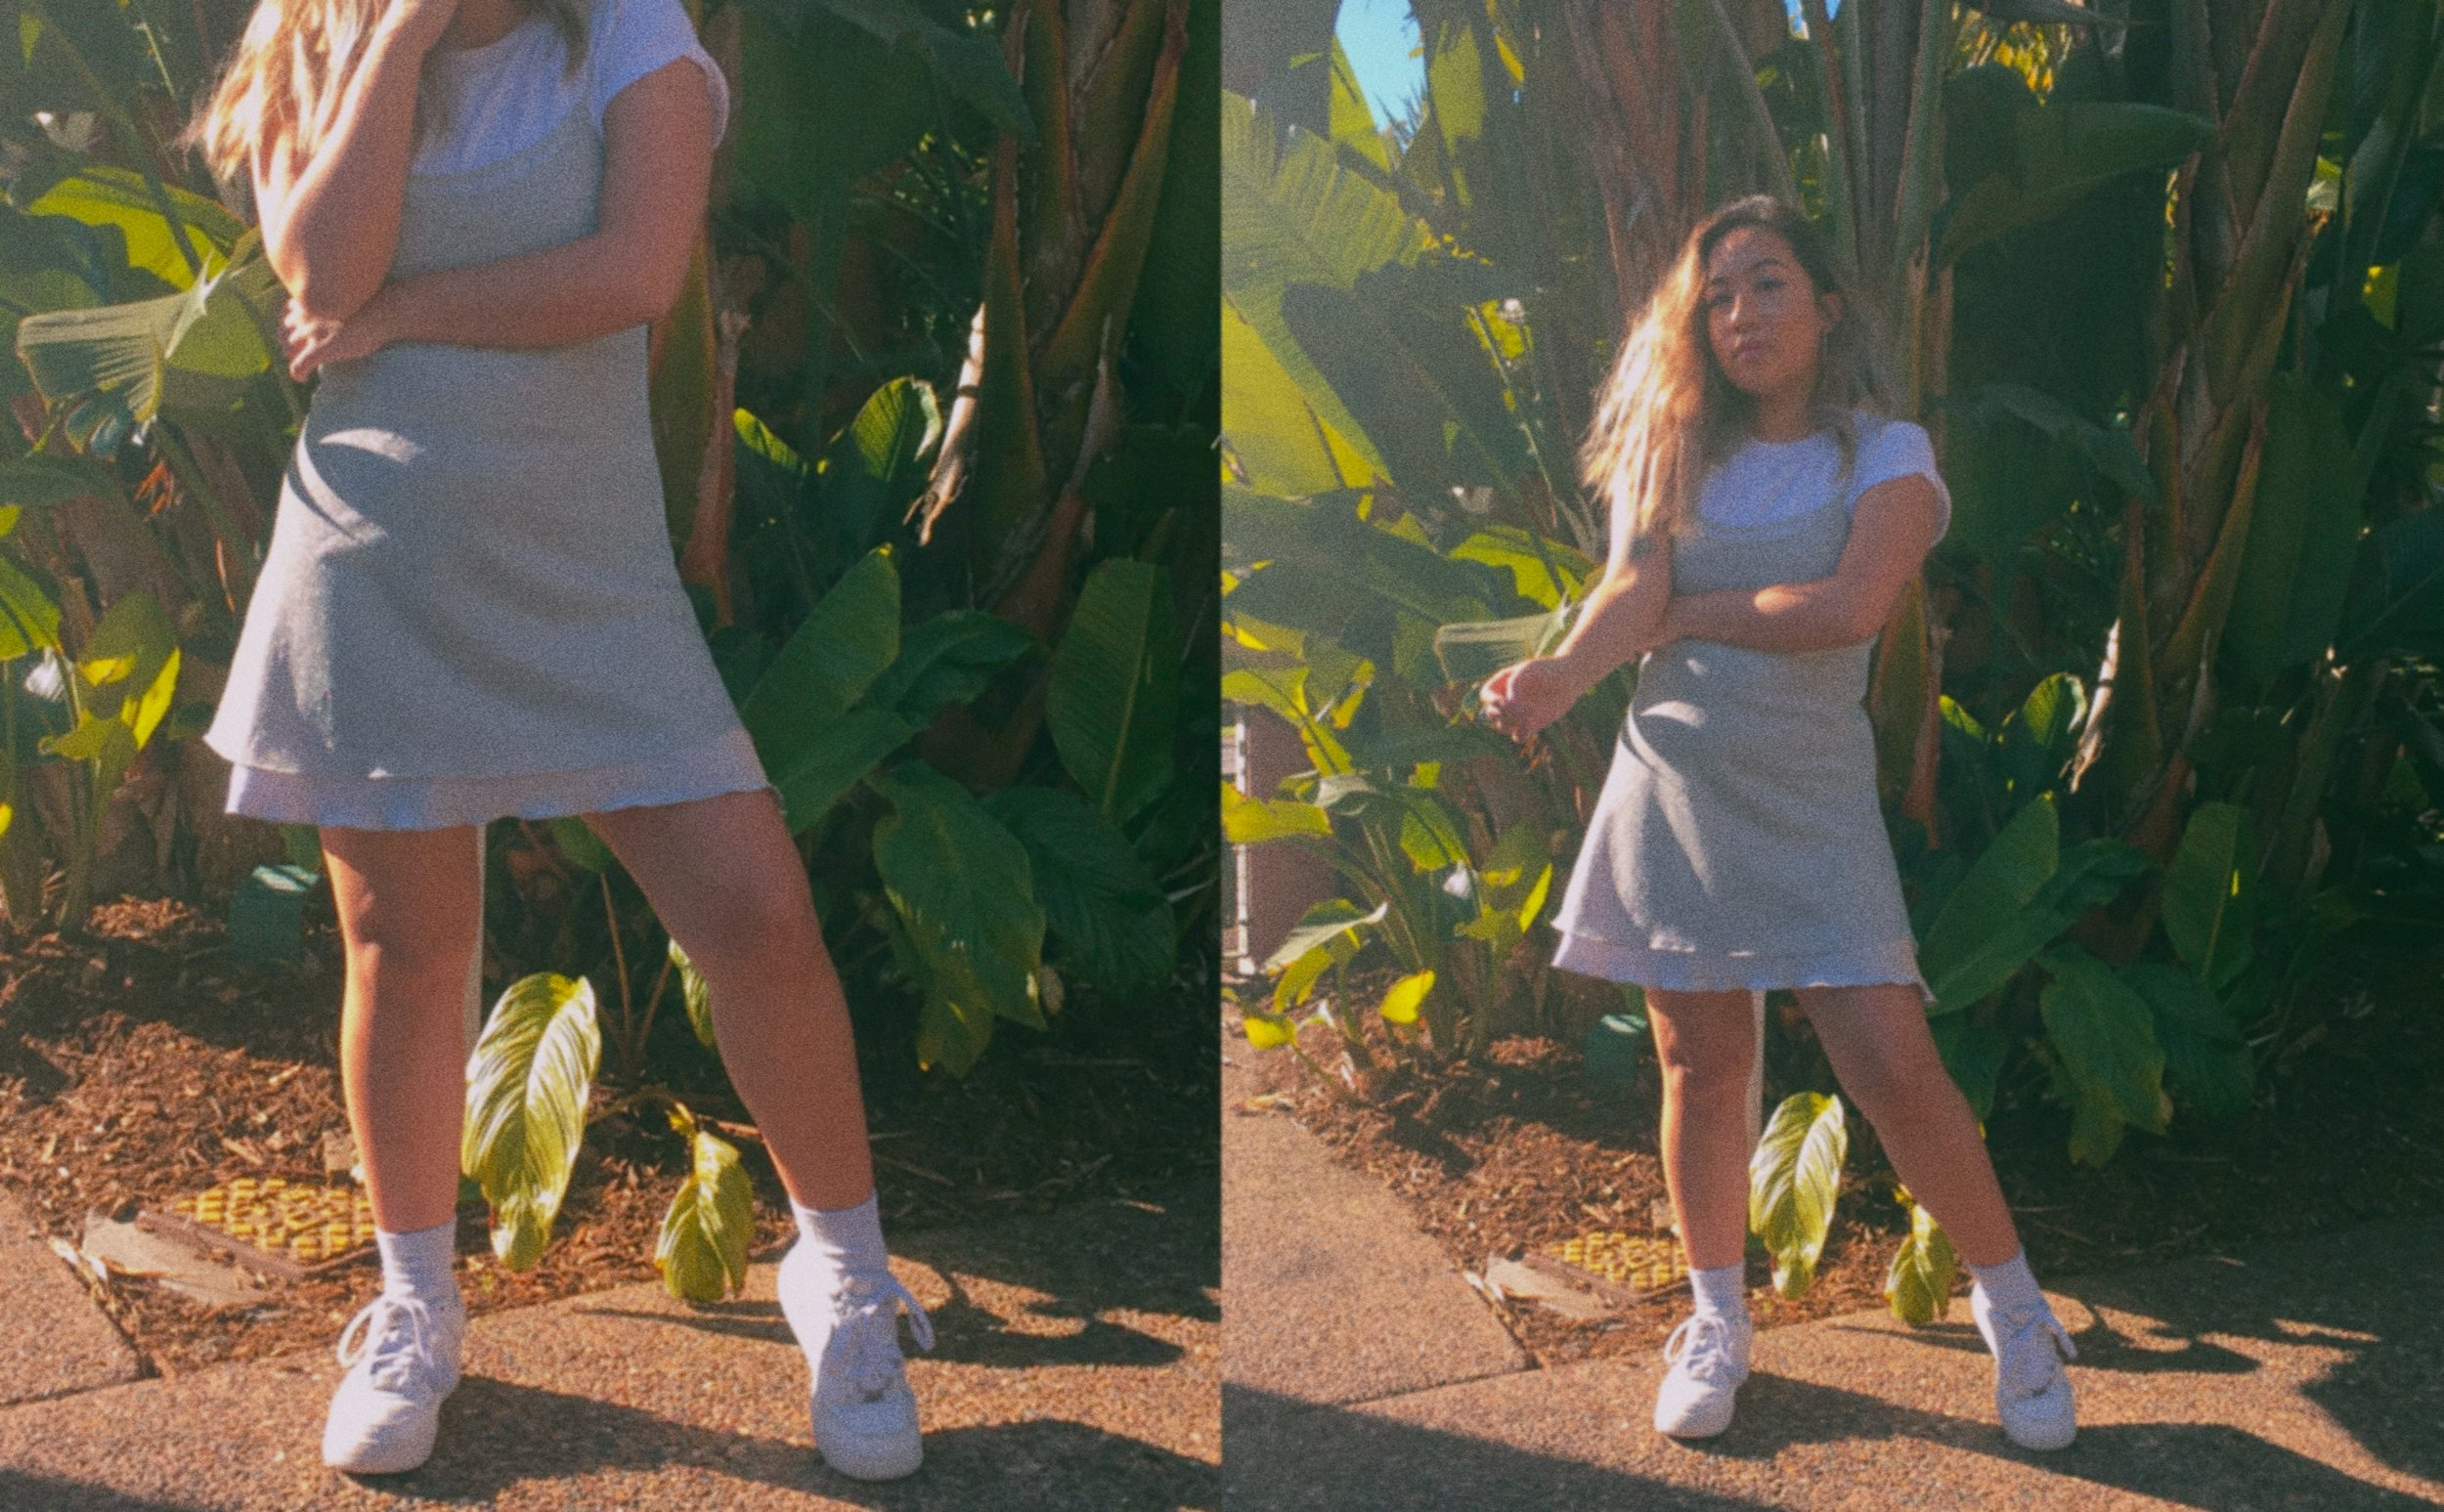 Slip Dress // Thrifted (Similar Items:  One ,  Two ) Top //  Plain White Tee  Socks //  Grey Ankle Socks  Shoes //  Nike Air Force 1